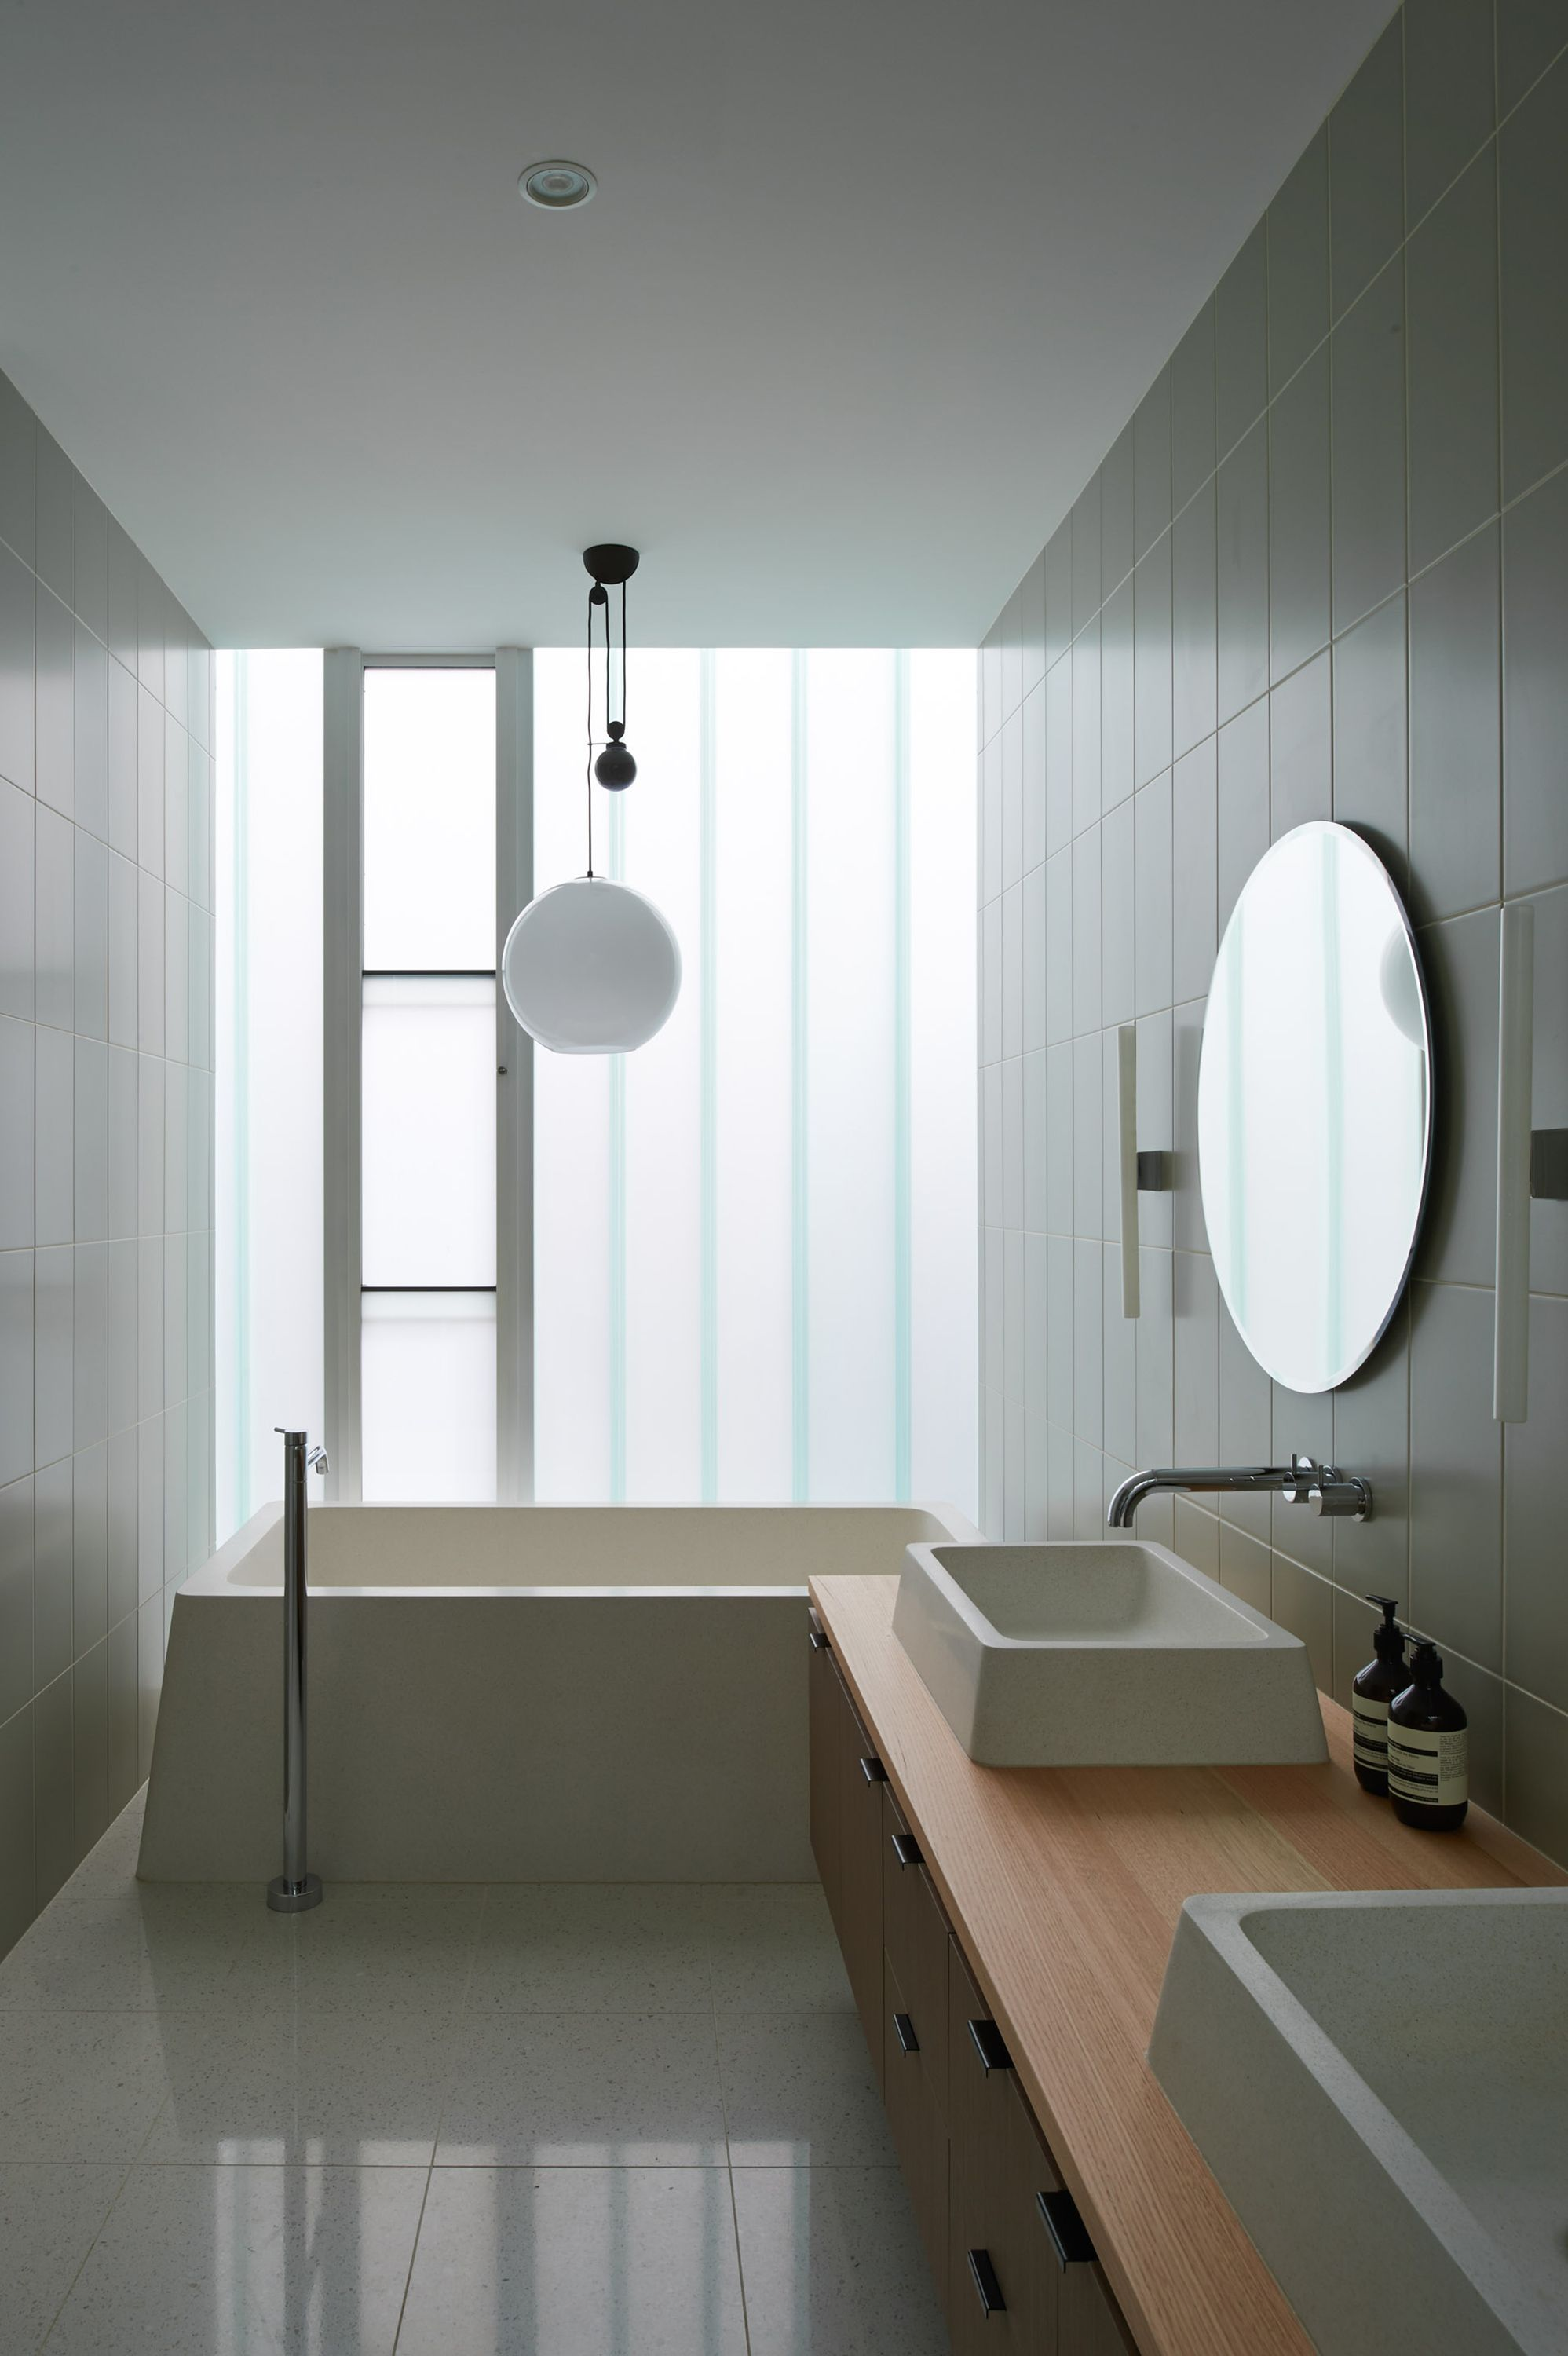 Kopolit Glass Facade And Minimalist Bathroom  Indesign Awesome Minimalist Bathroom Decorating Inspiration